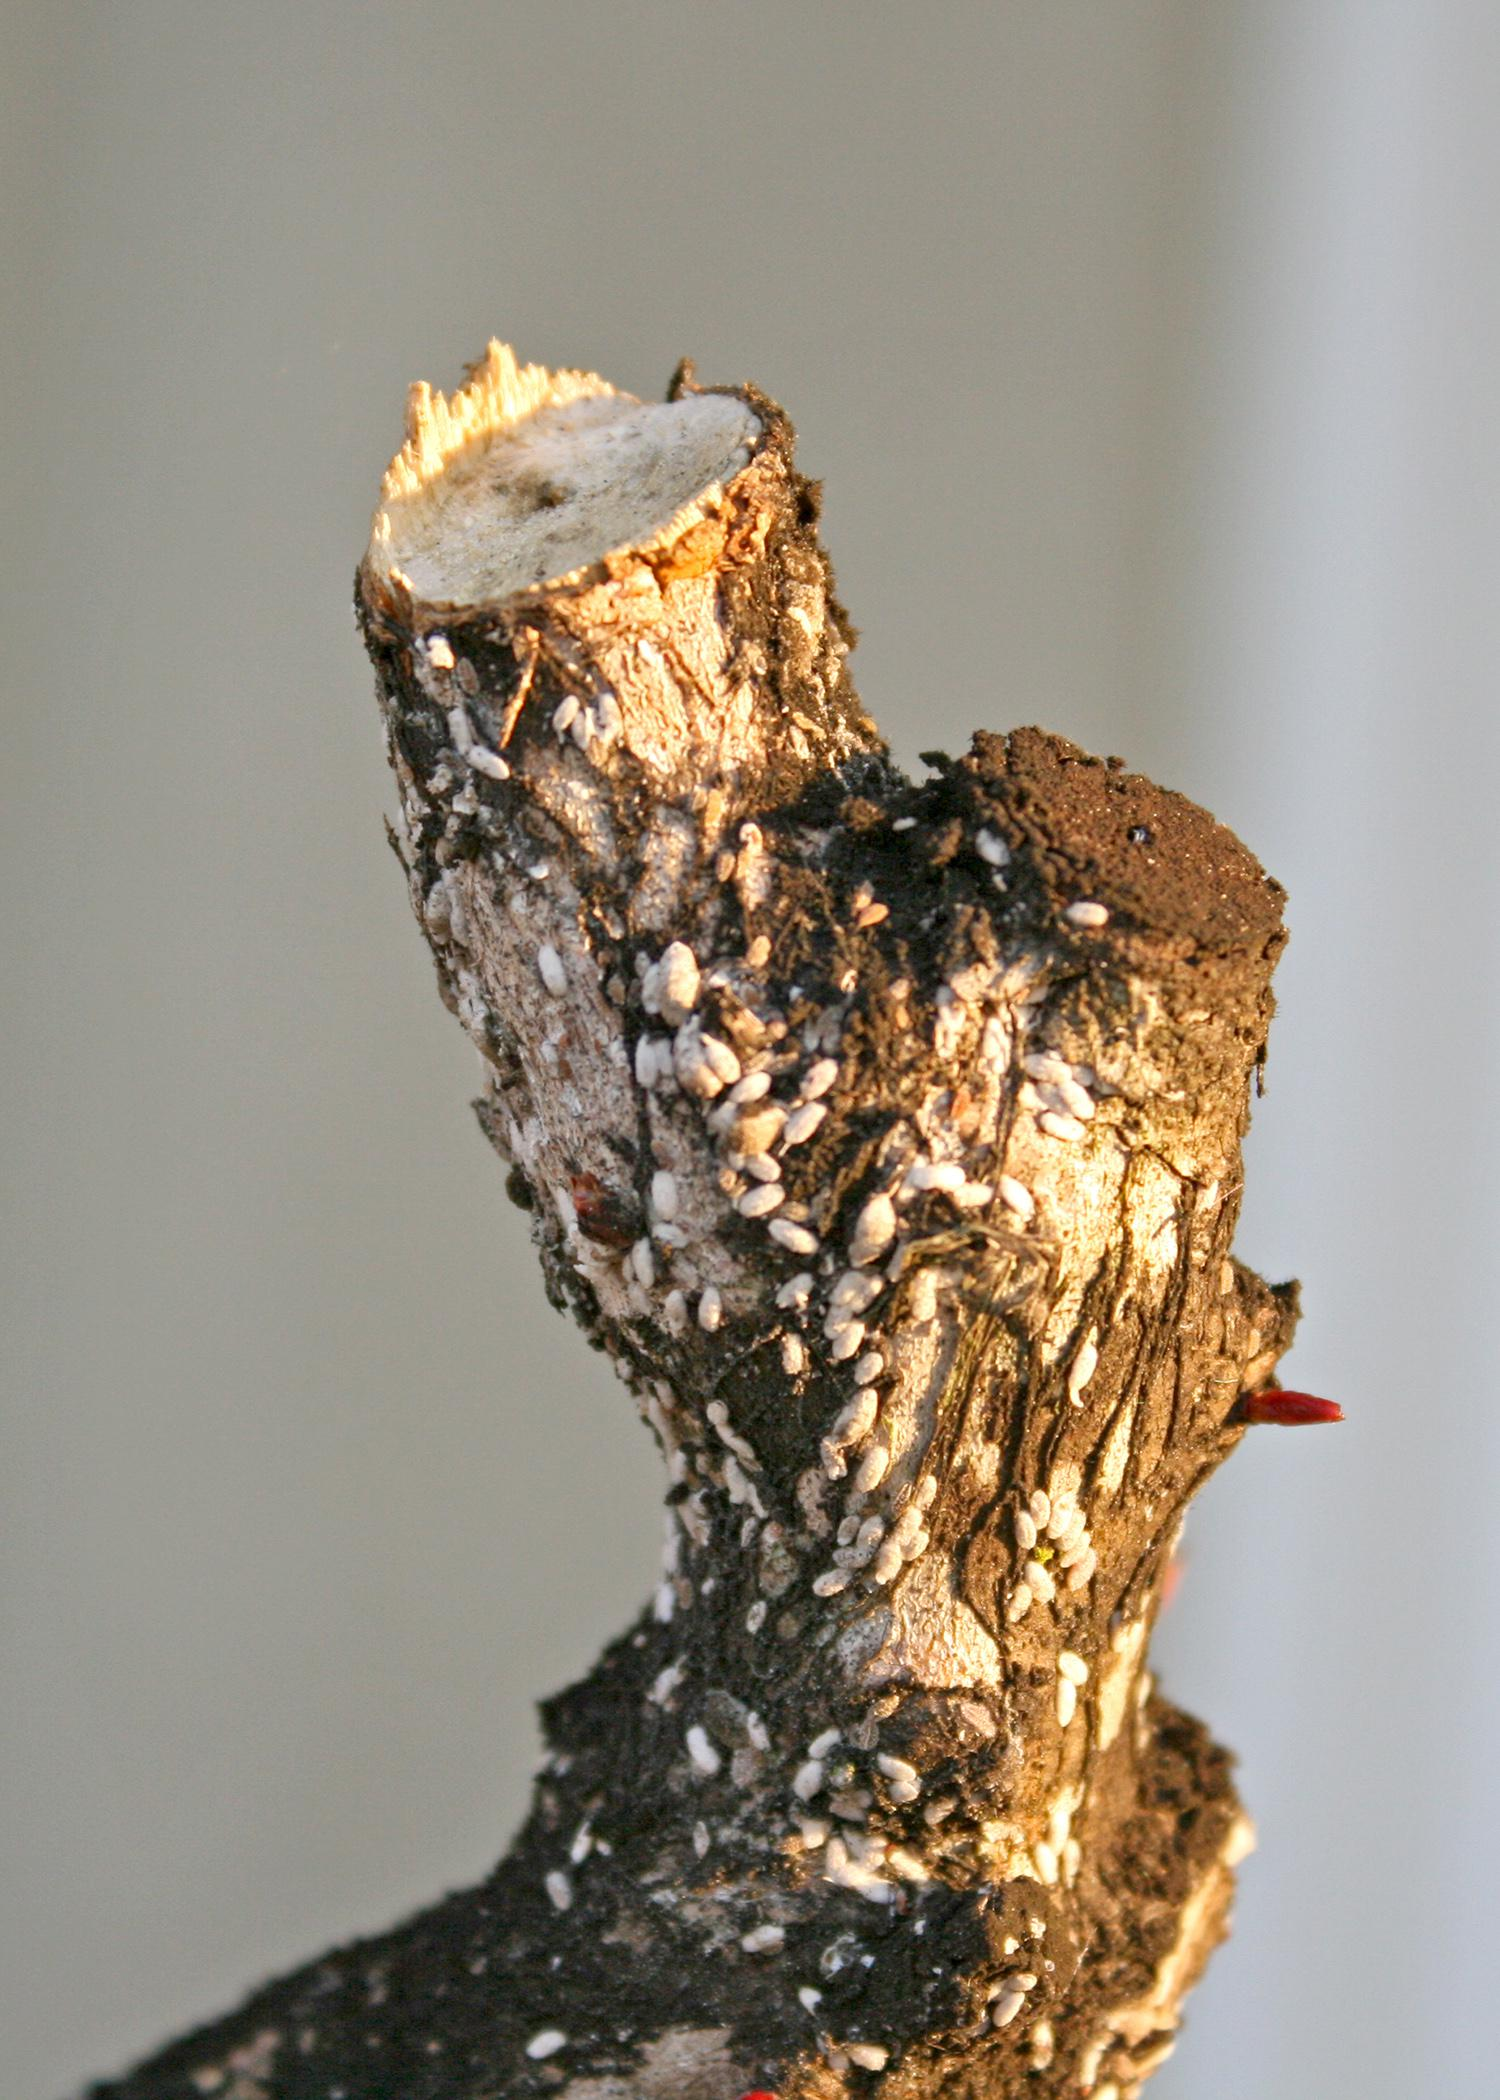 Crape myrtle bark scale were found in Mississippi in March. This invasive insect, photographed in Ocean Springs, Mississippi, on March 15, 2015, attacks beautiful and normally low-maintenance crape myrtles. (Photo by MSU Extension Service/Gary Bachman)